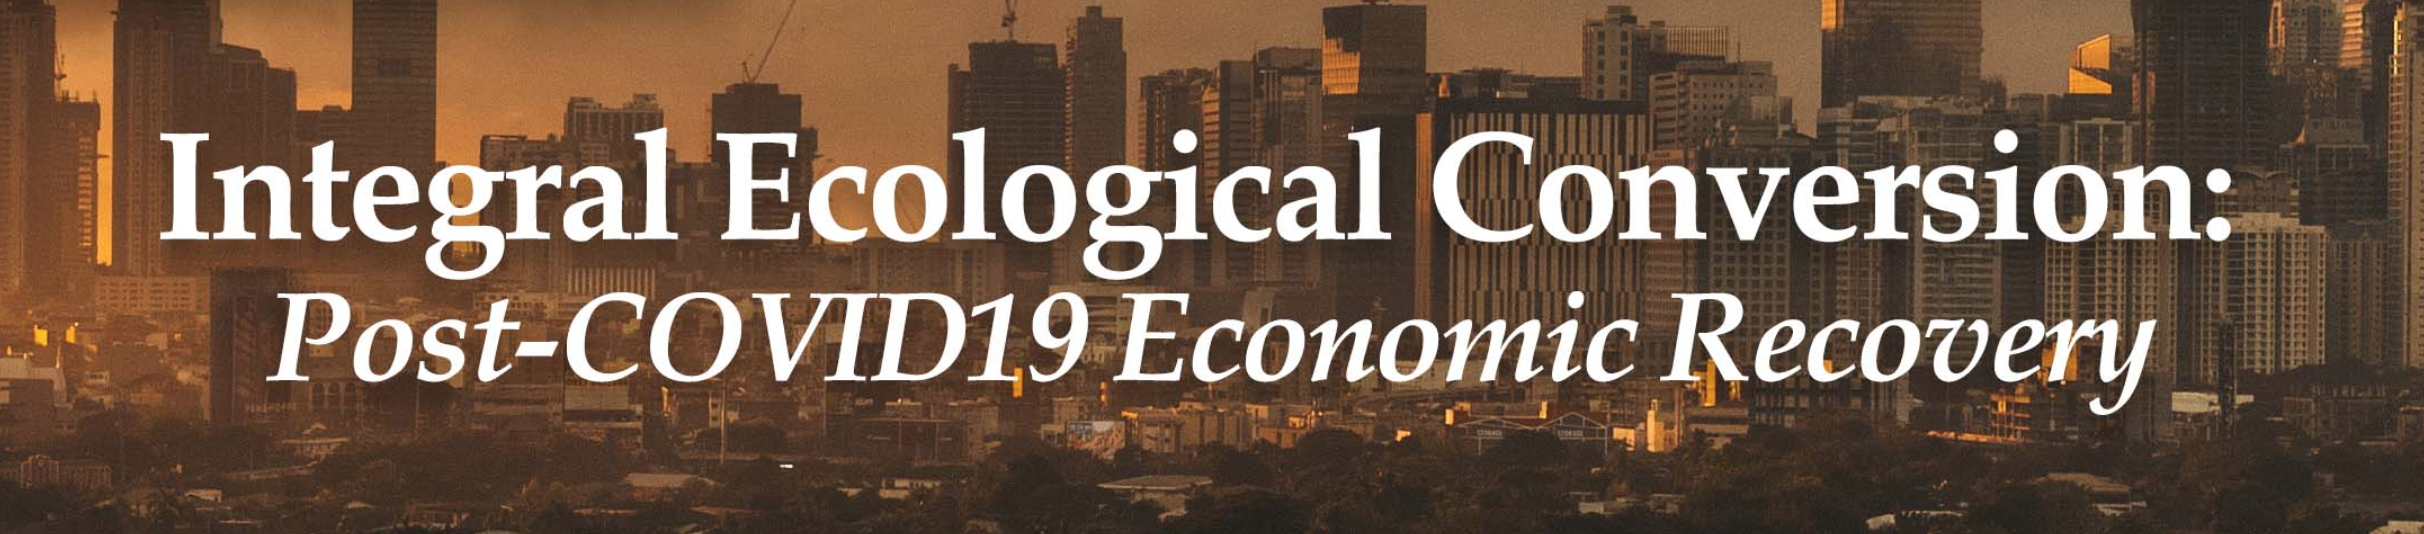 Post-COVID-19 economic recovery and integral ecological conversion